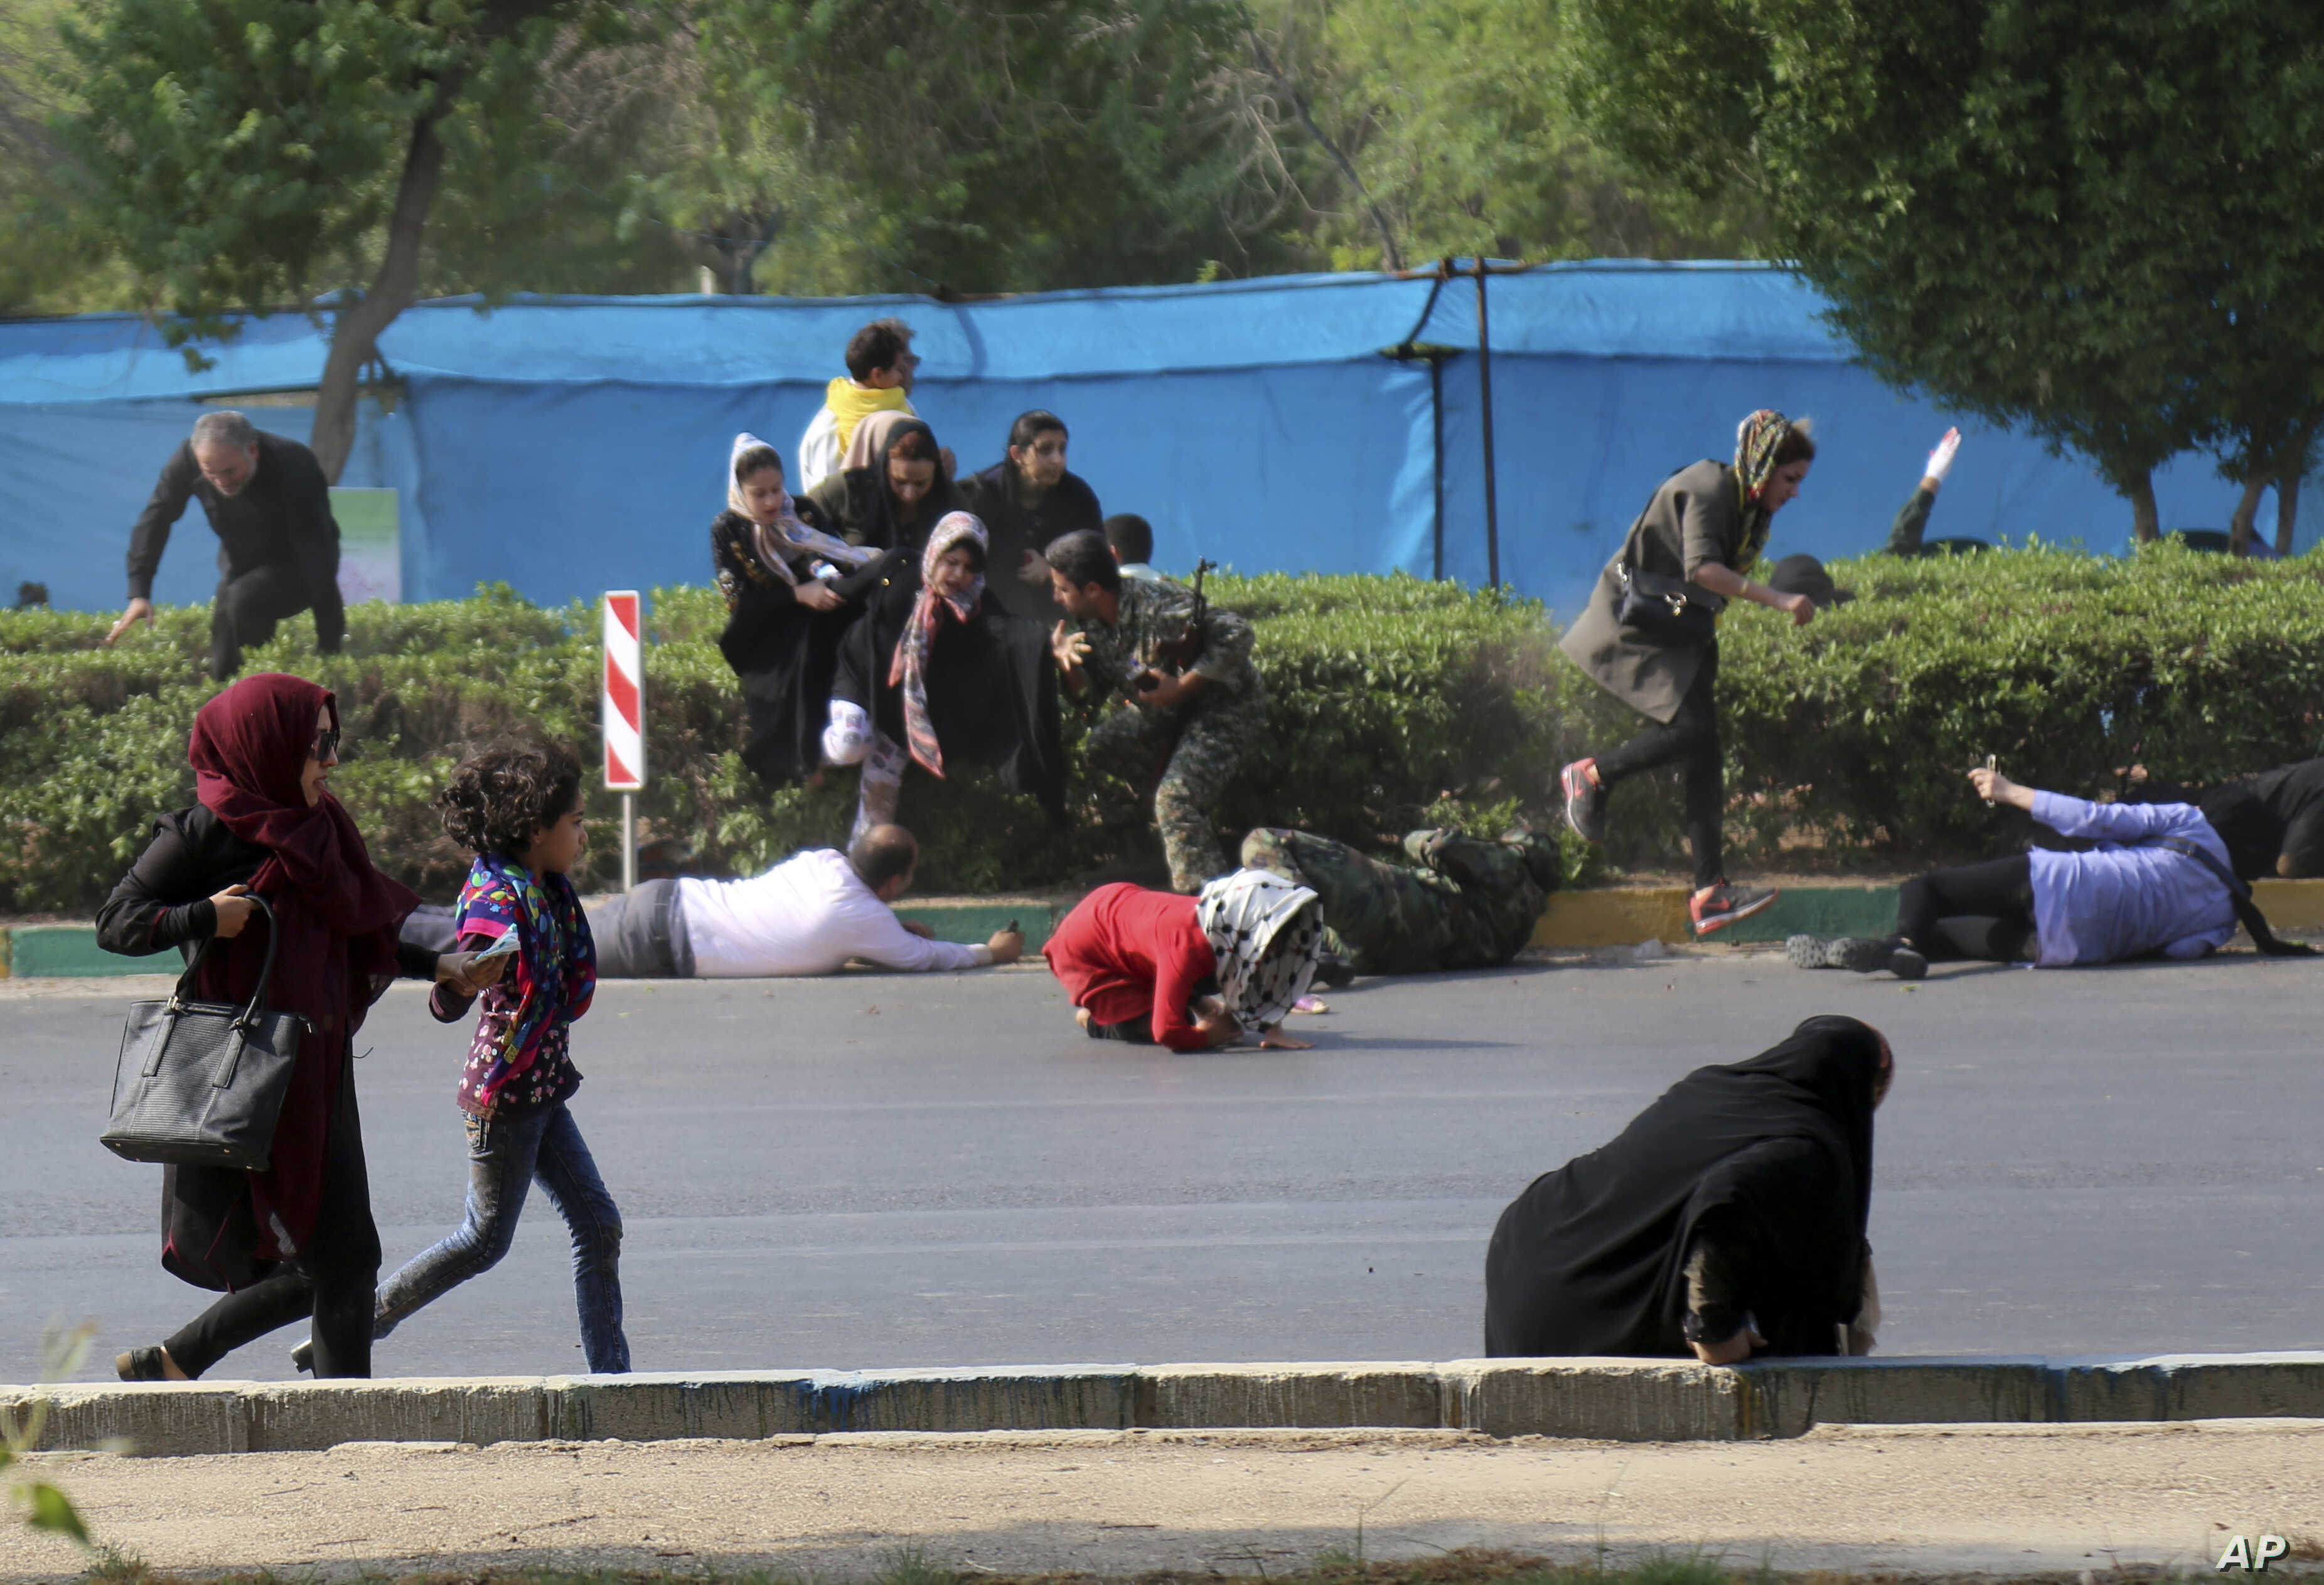 In this photo provided by Mehr News Agency, civilians try to take cover in a shooting attack during a military parade marking the 38th anniversary of Iraq's 1980 invasion of Iran, in the southwestern city of Ahvaz, Iran, Sept. 22, 2018.